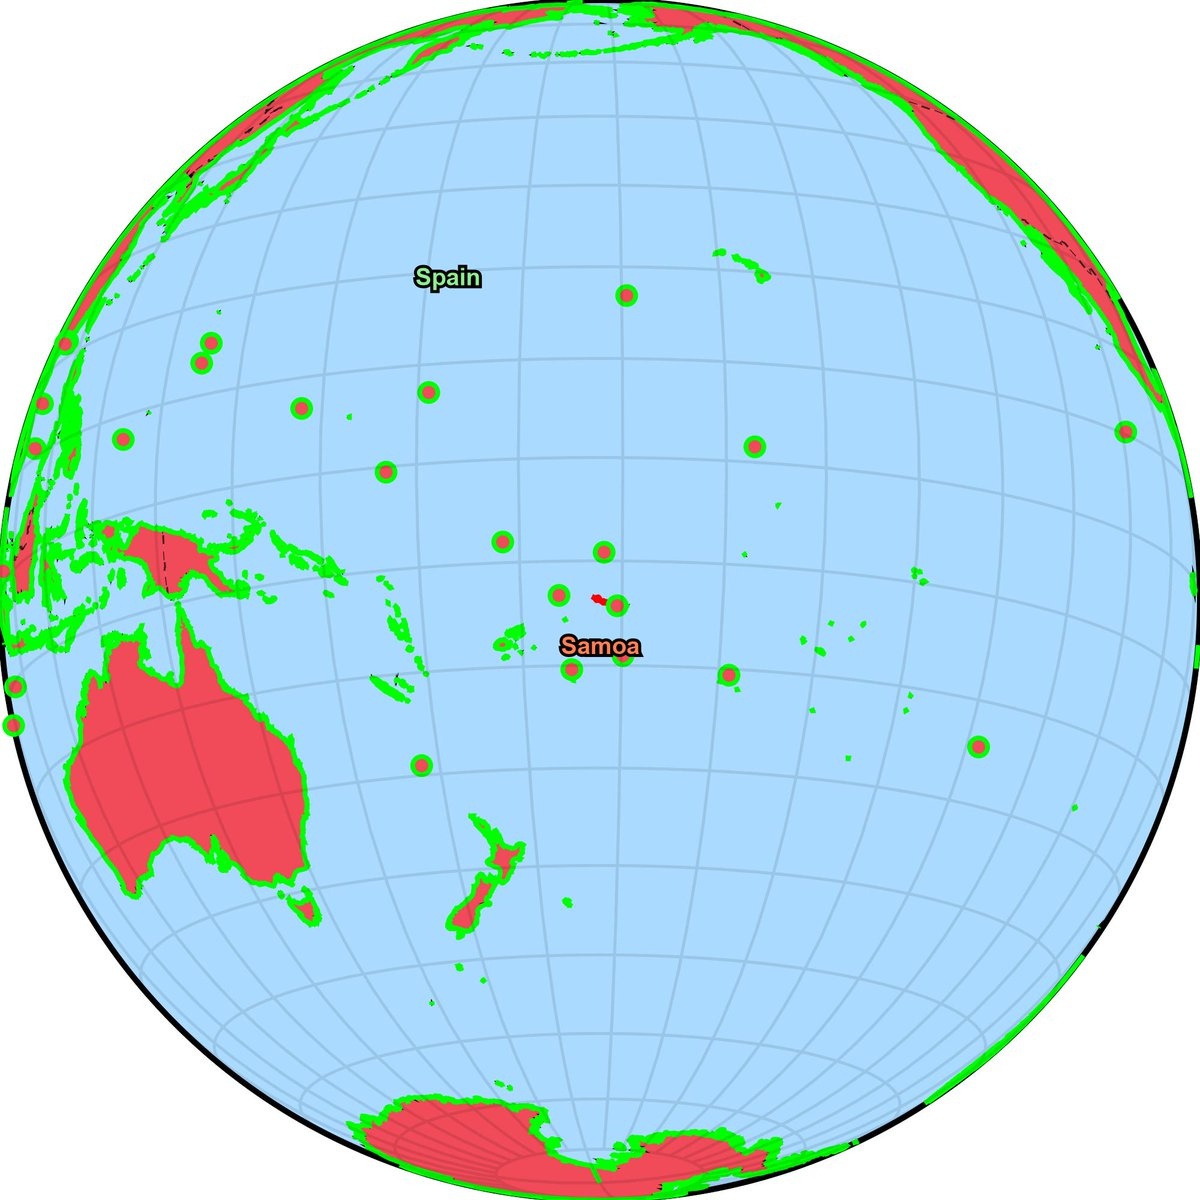 July 2141, Spain conquered Samoa territory previously occupied by Pitcairn Islands. Pitcairn Islands has been completely defeated. Spain has conquered the world. #Spain #PitcairnIslands